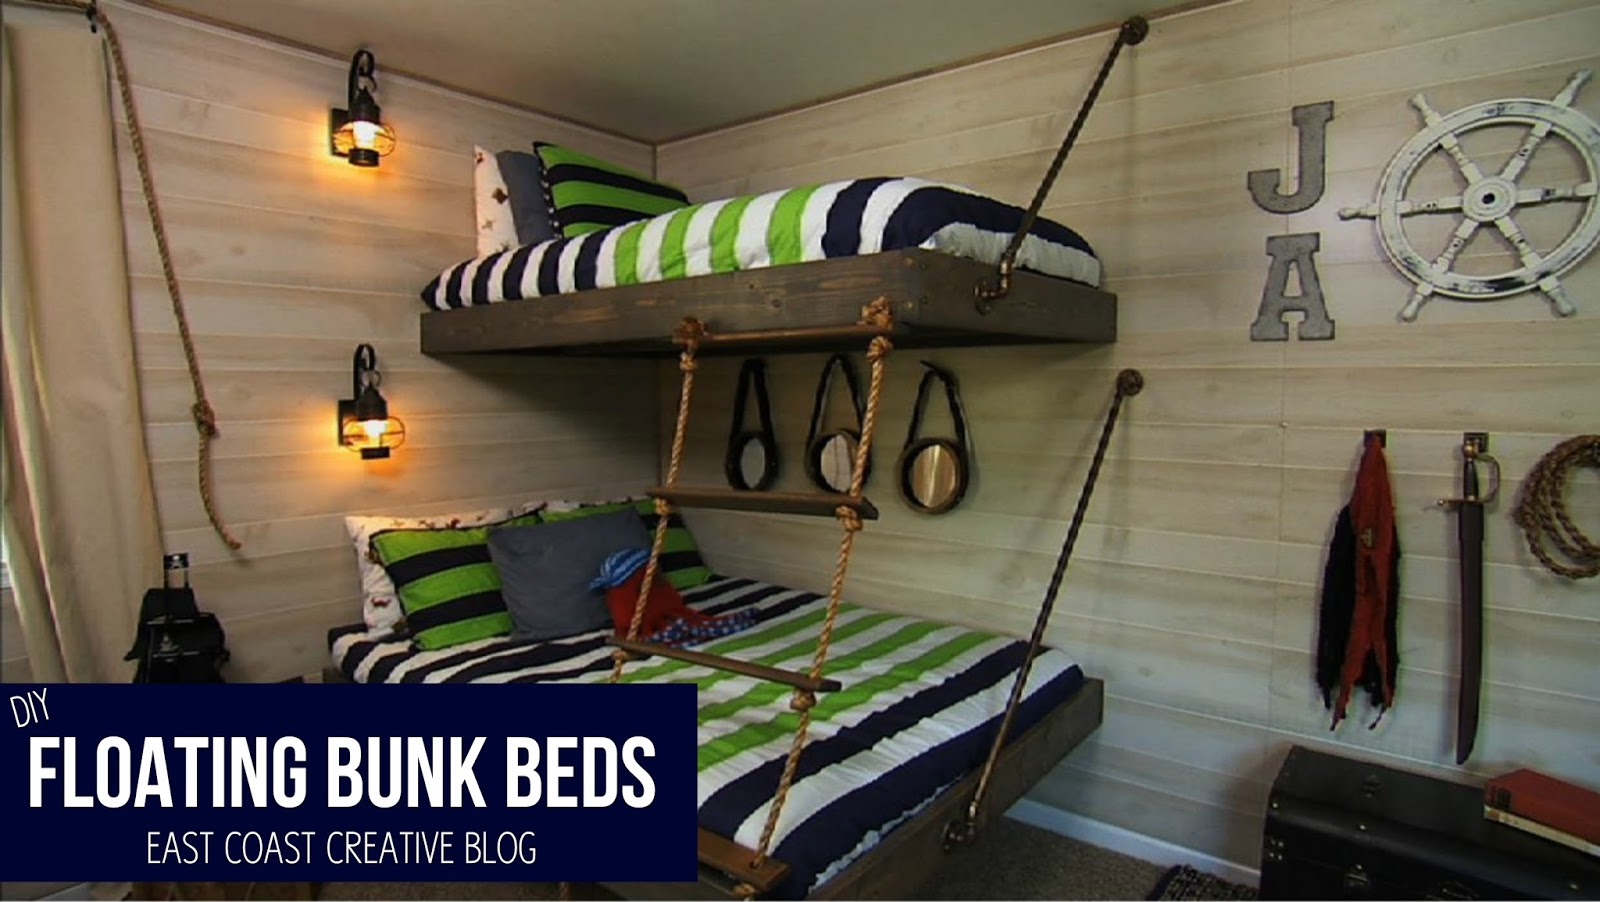 Floating Bunk Beds Tutorial {Knock It Off DIY Project}